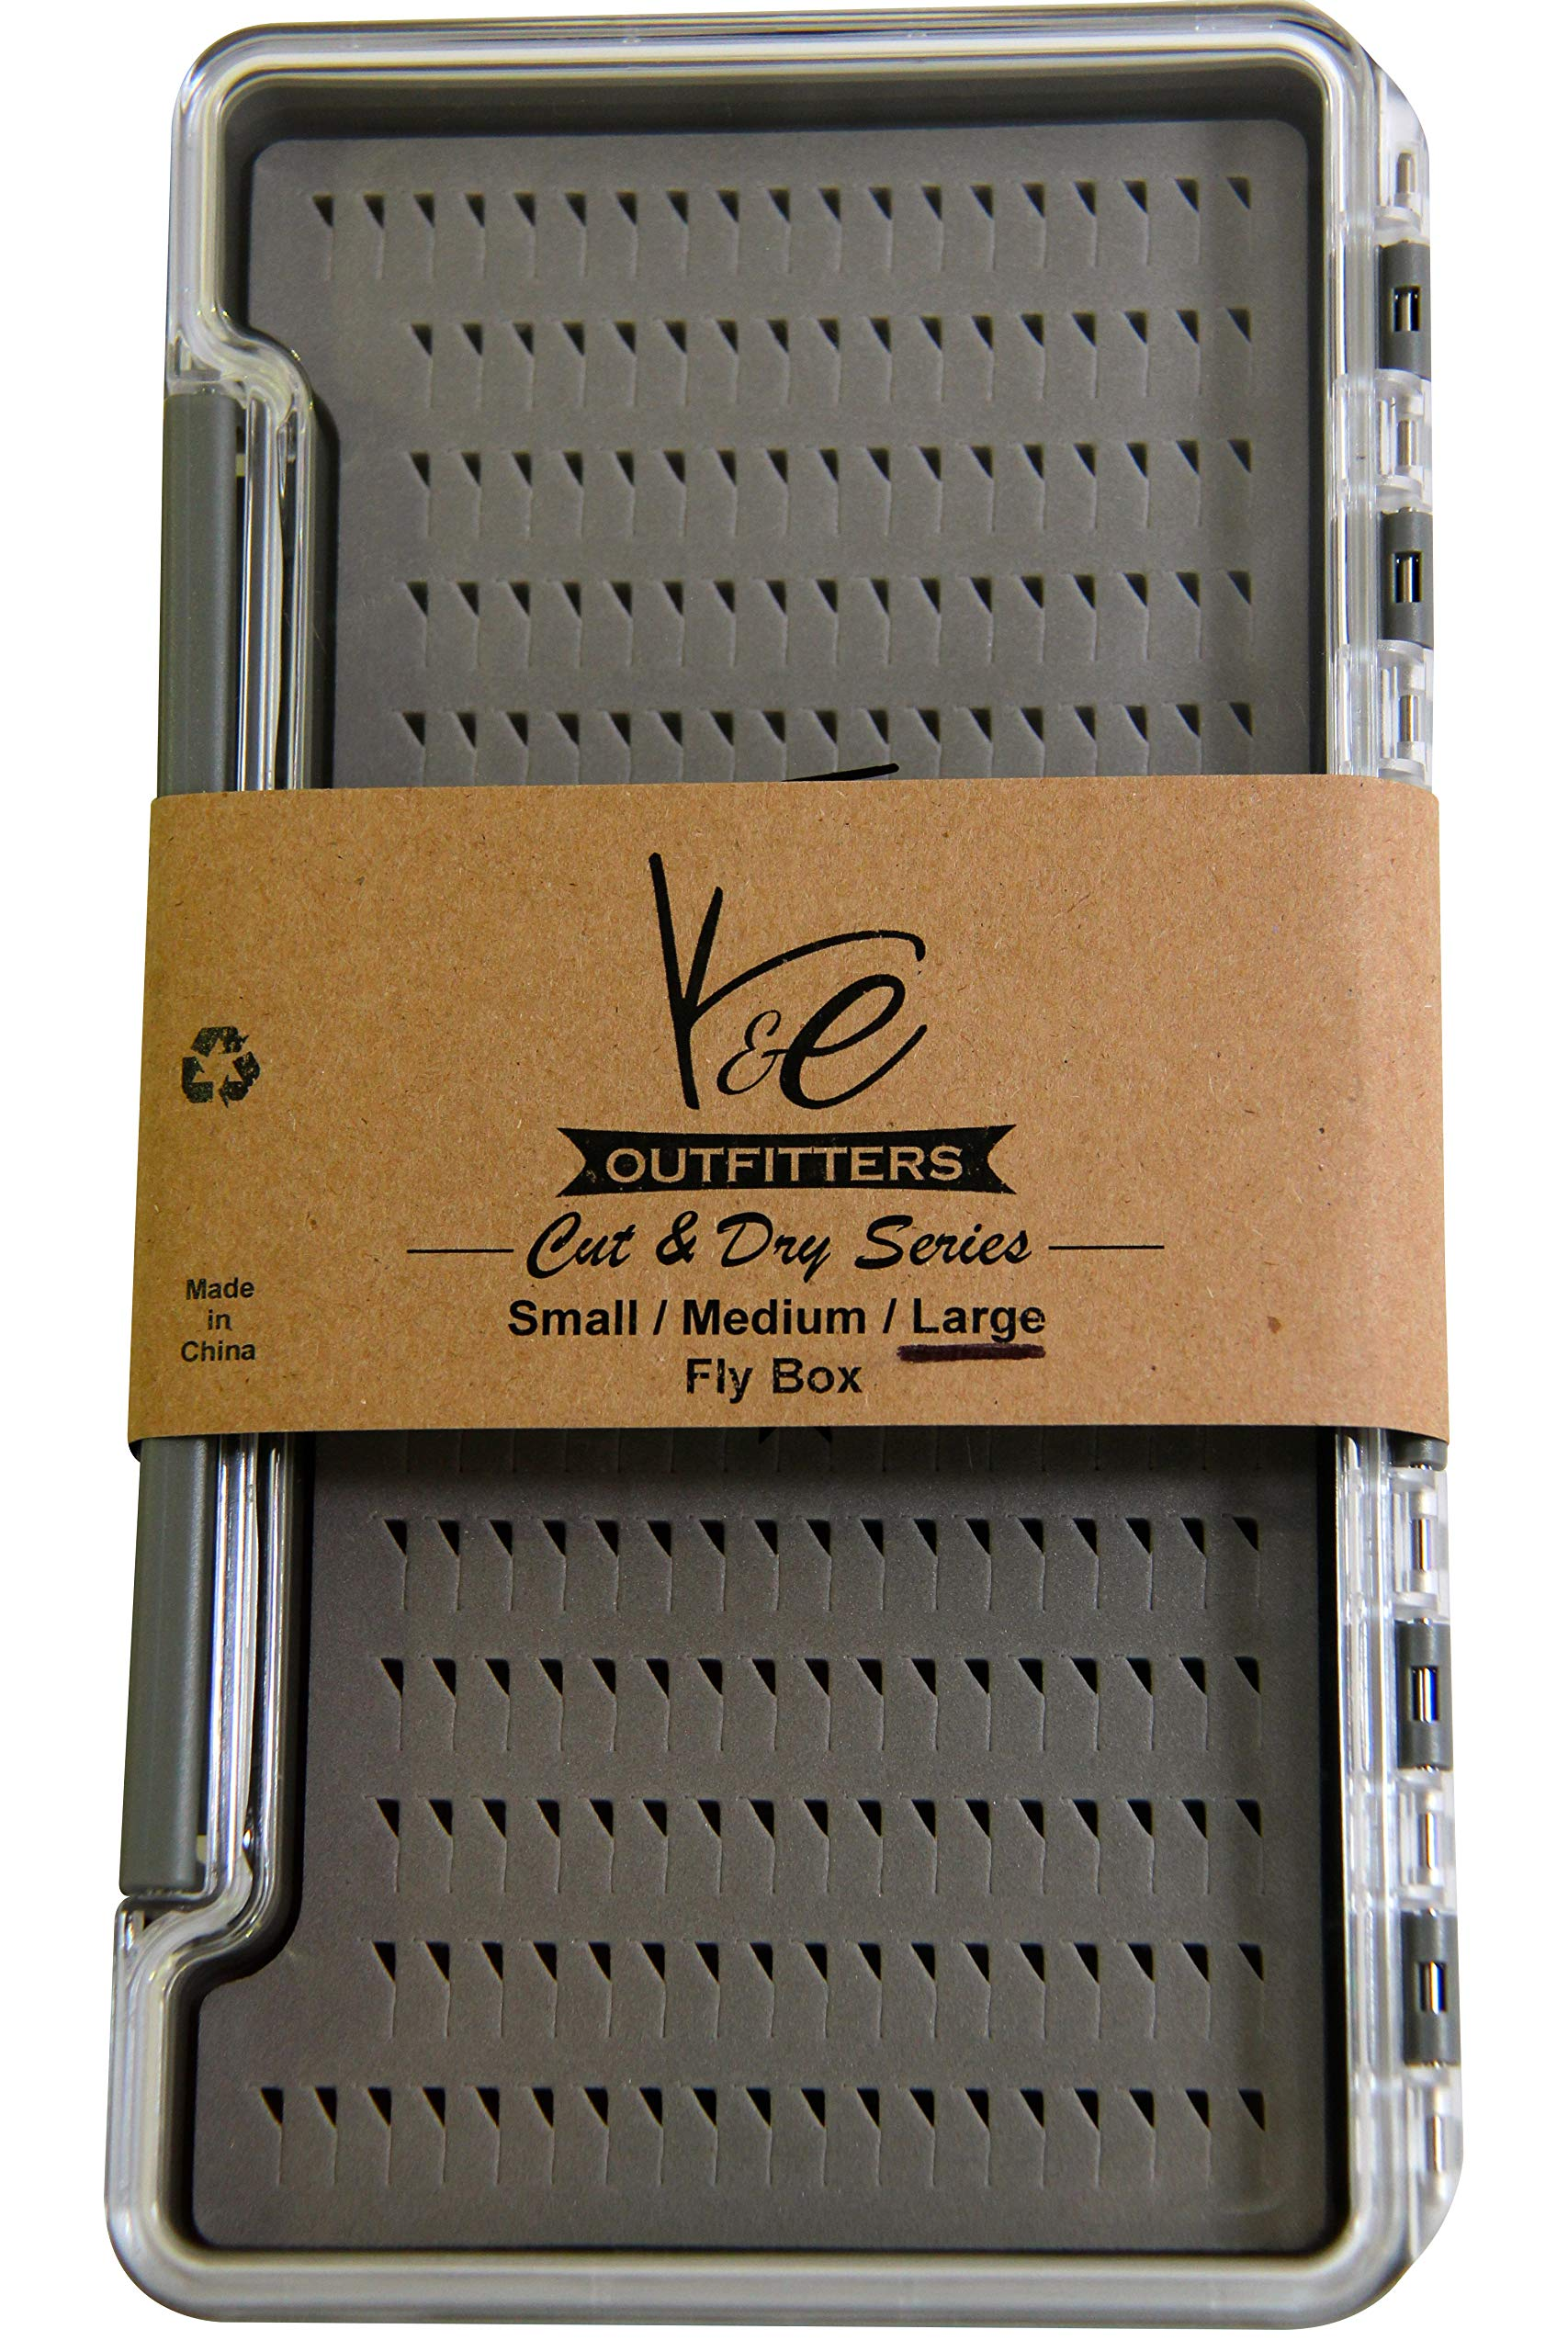 K&E Outfitters Cut and Dry Series Fly Fishing Fly Box (Large) by K&E Outfitters